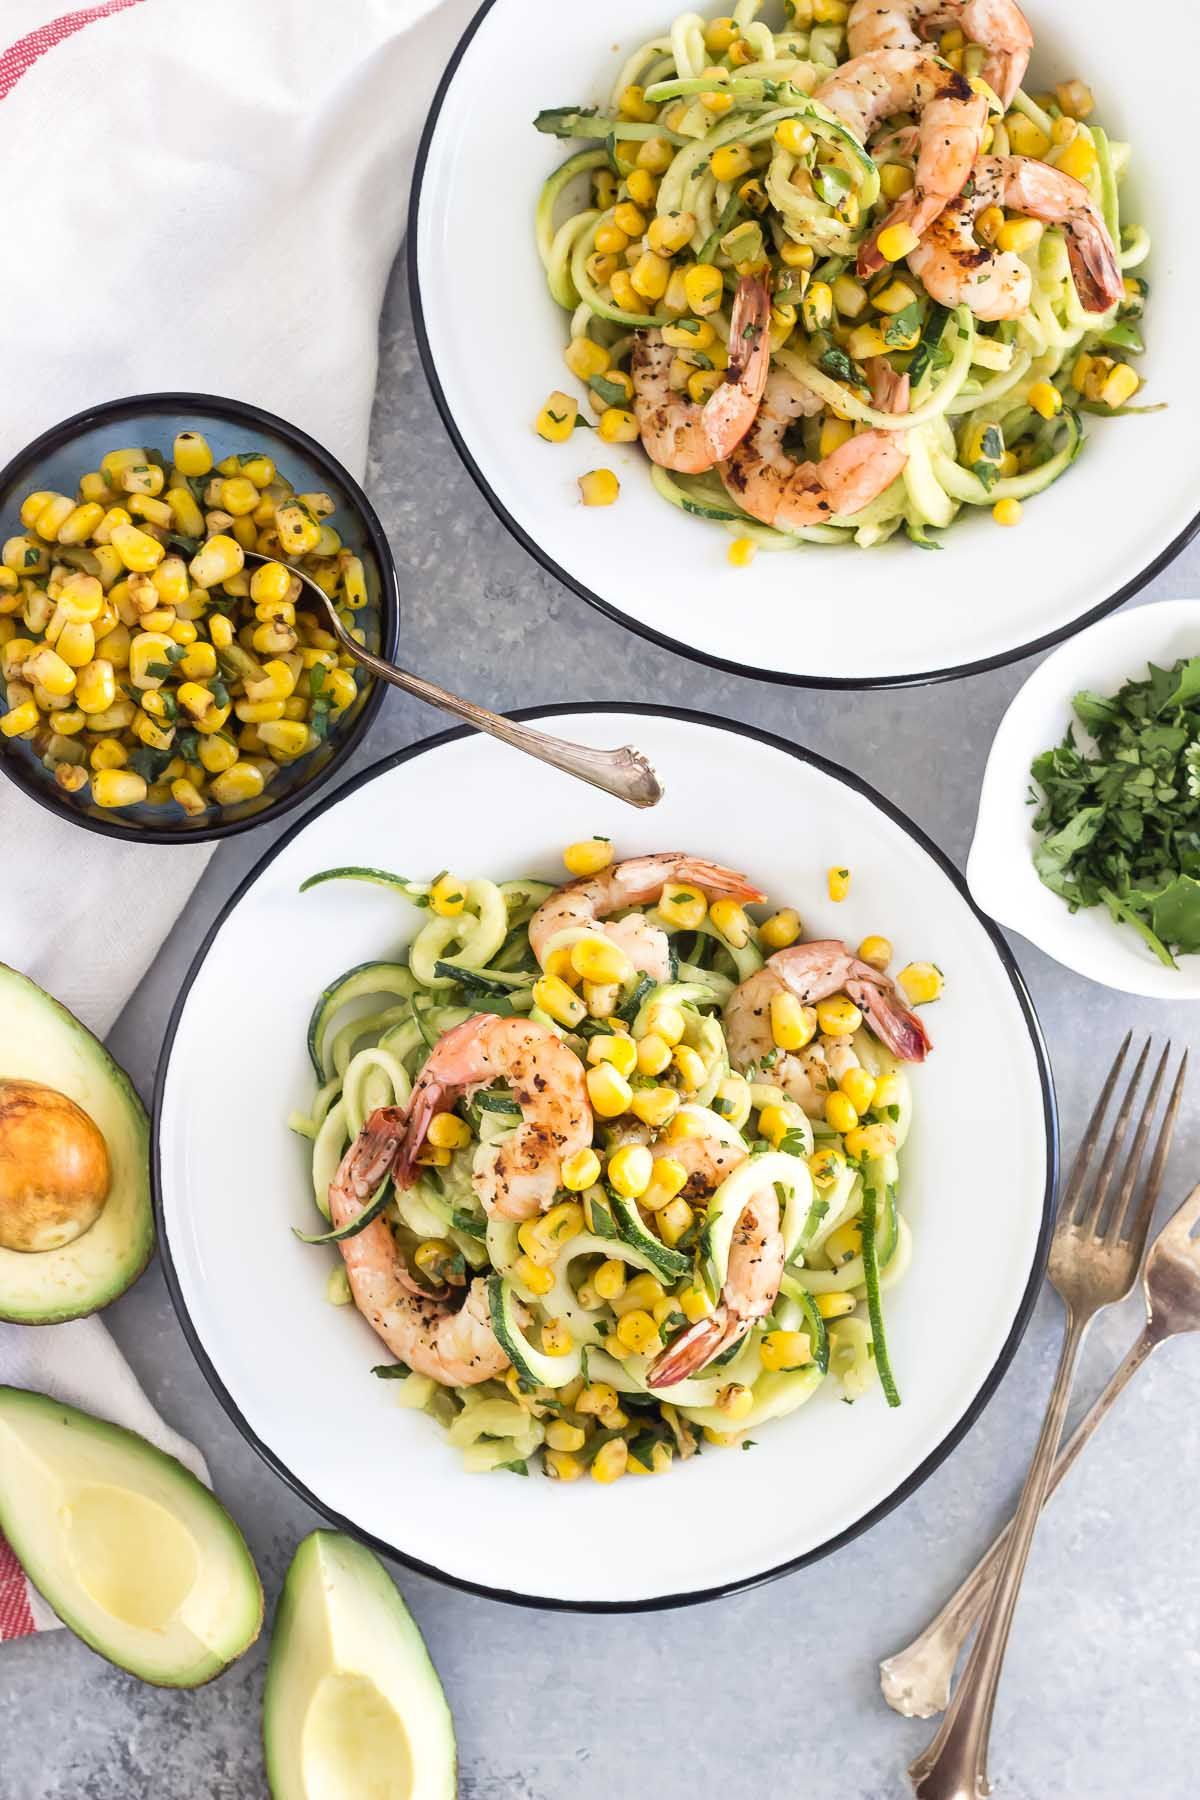 You won't miss the pasta in this spicy avocado zucchini noodle dish! Creamy avocado sauce goes perfectly with spicy grilled shrimp and a sweet corn salsa.